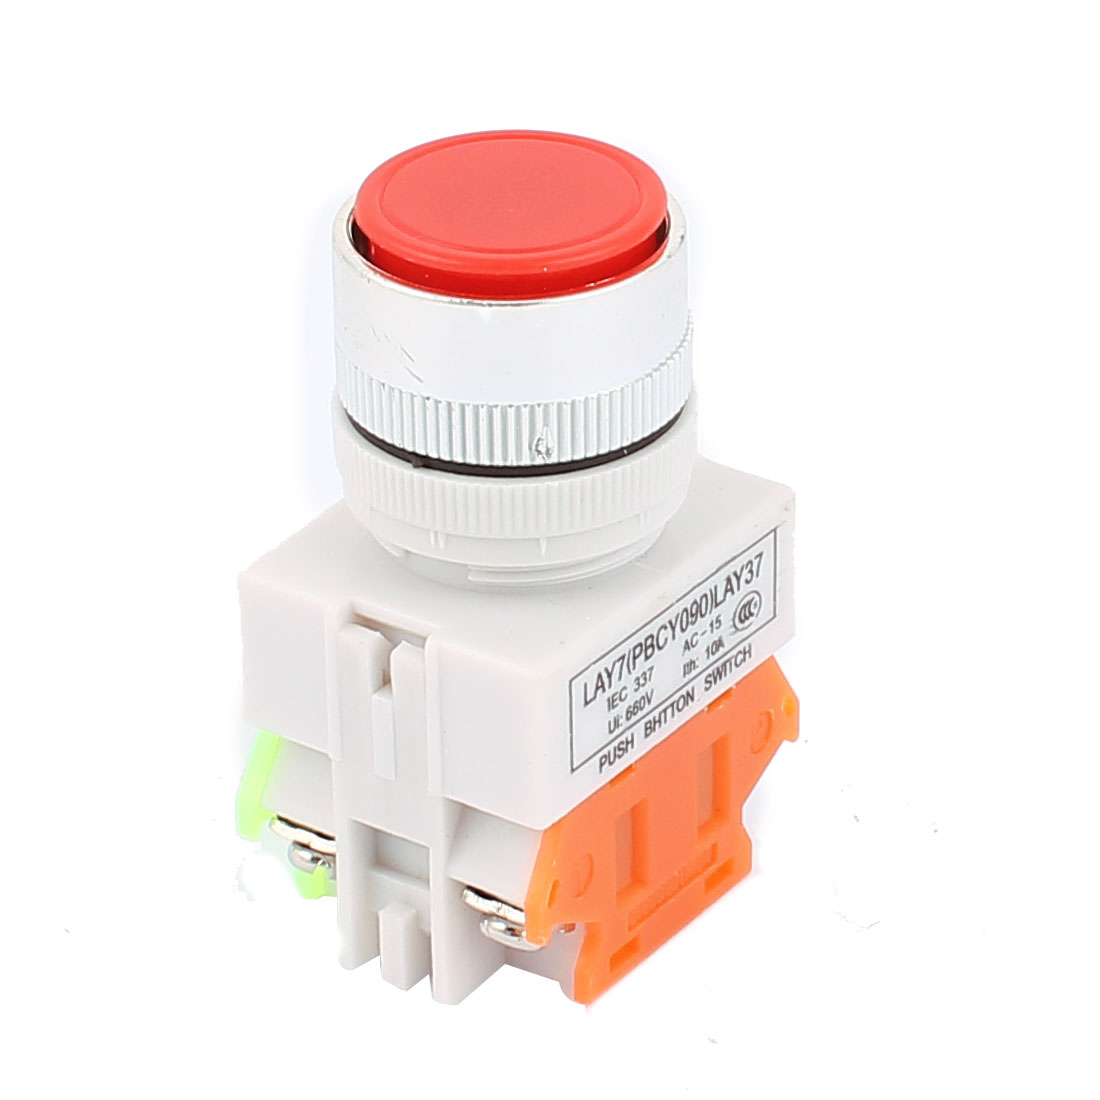 AC 660V 10A 24mm Thread Dia NO DPST Momentary Emergency Stop Push Button Switch Red